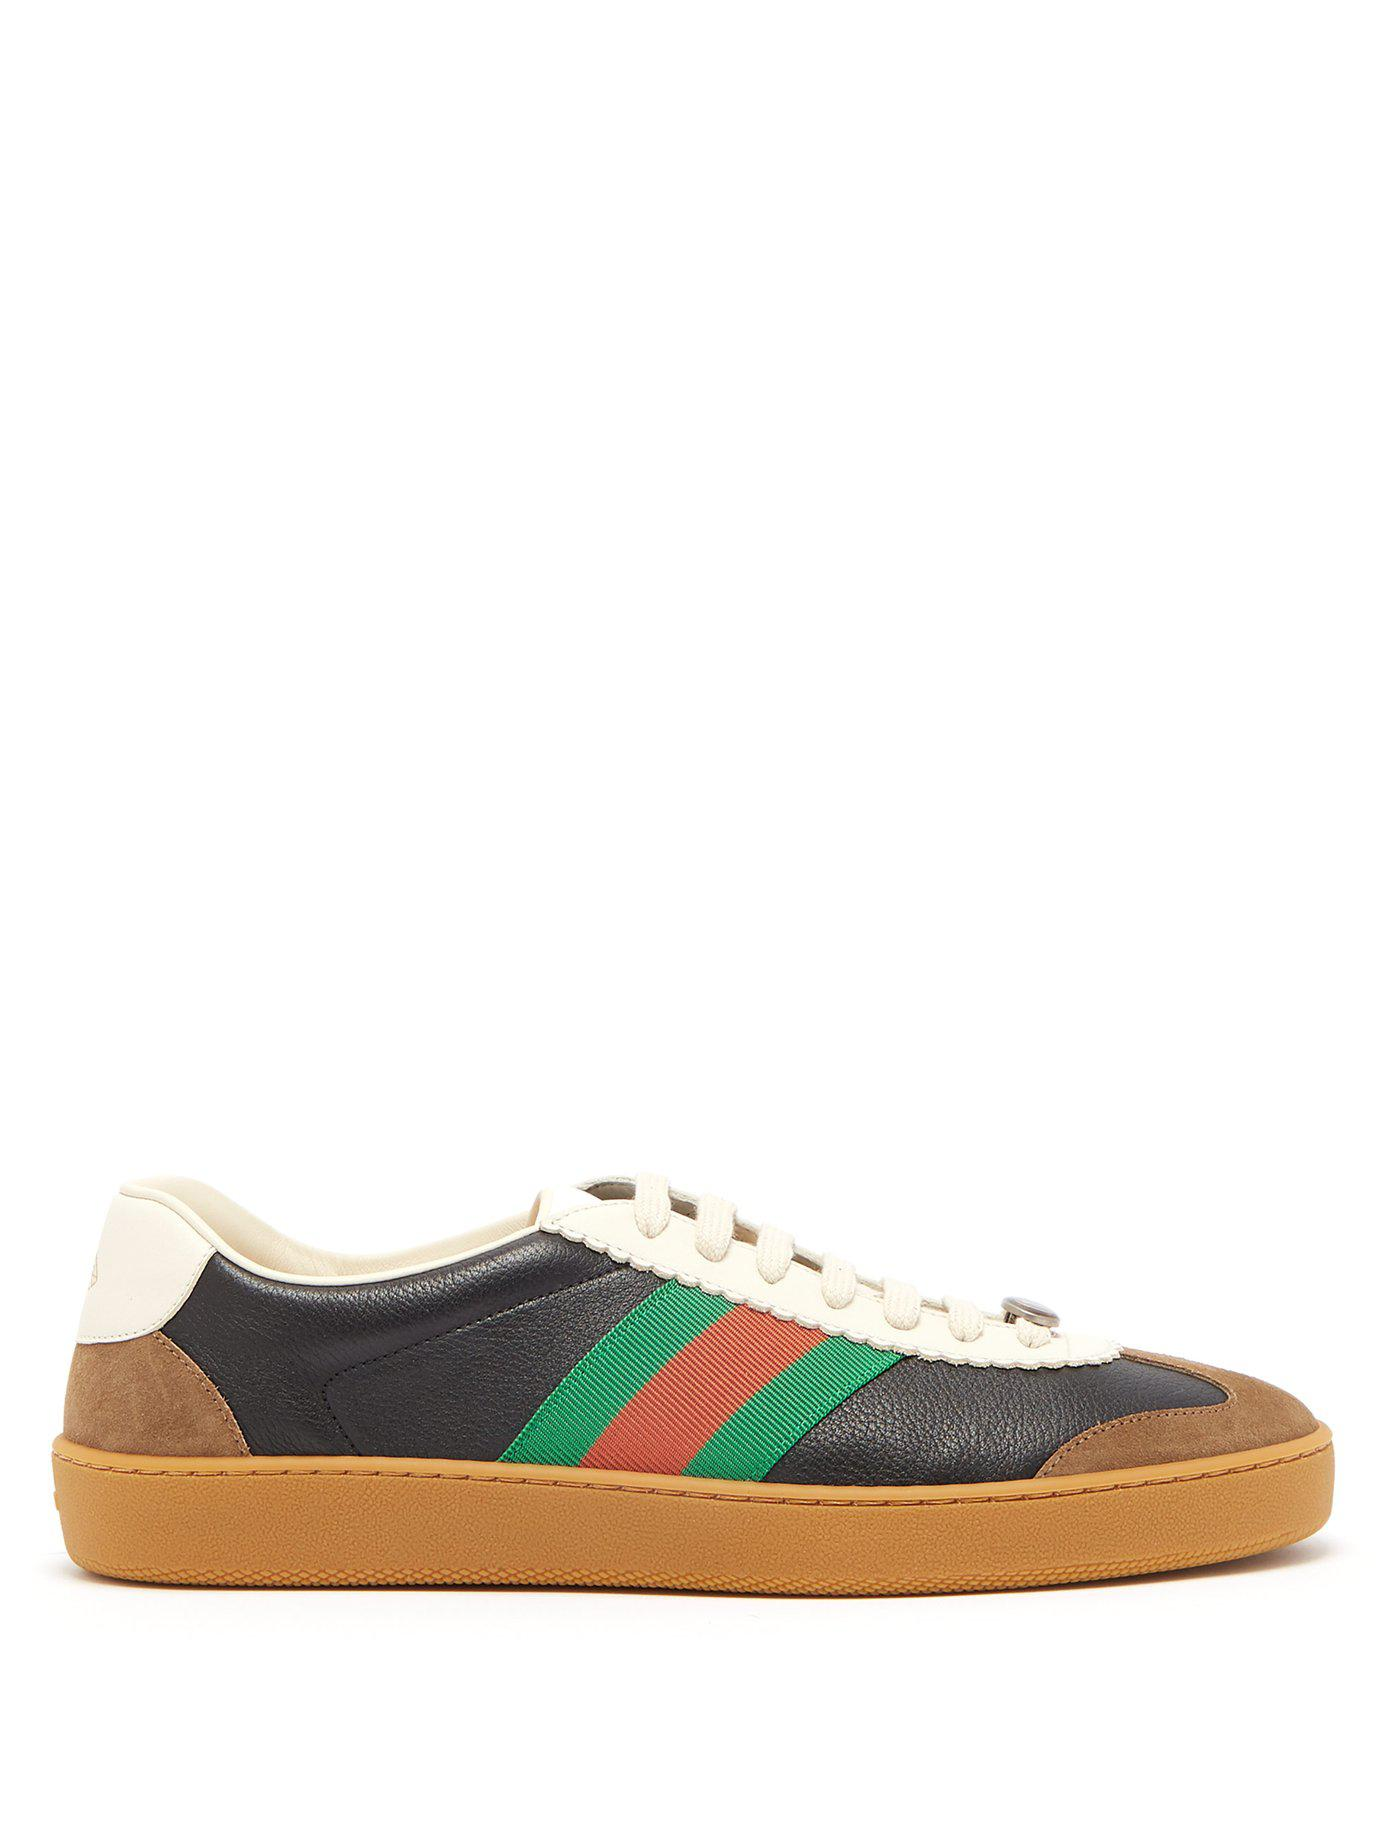 c8689a4e790d Lyst - Gucci G74 Leather Low Top Trainers in Black for Men